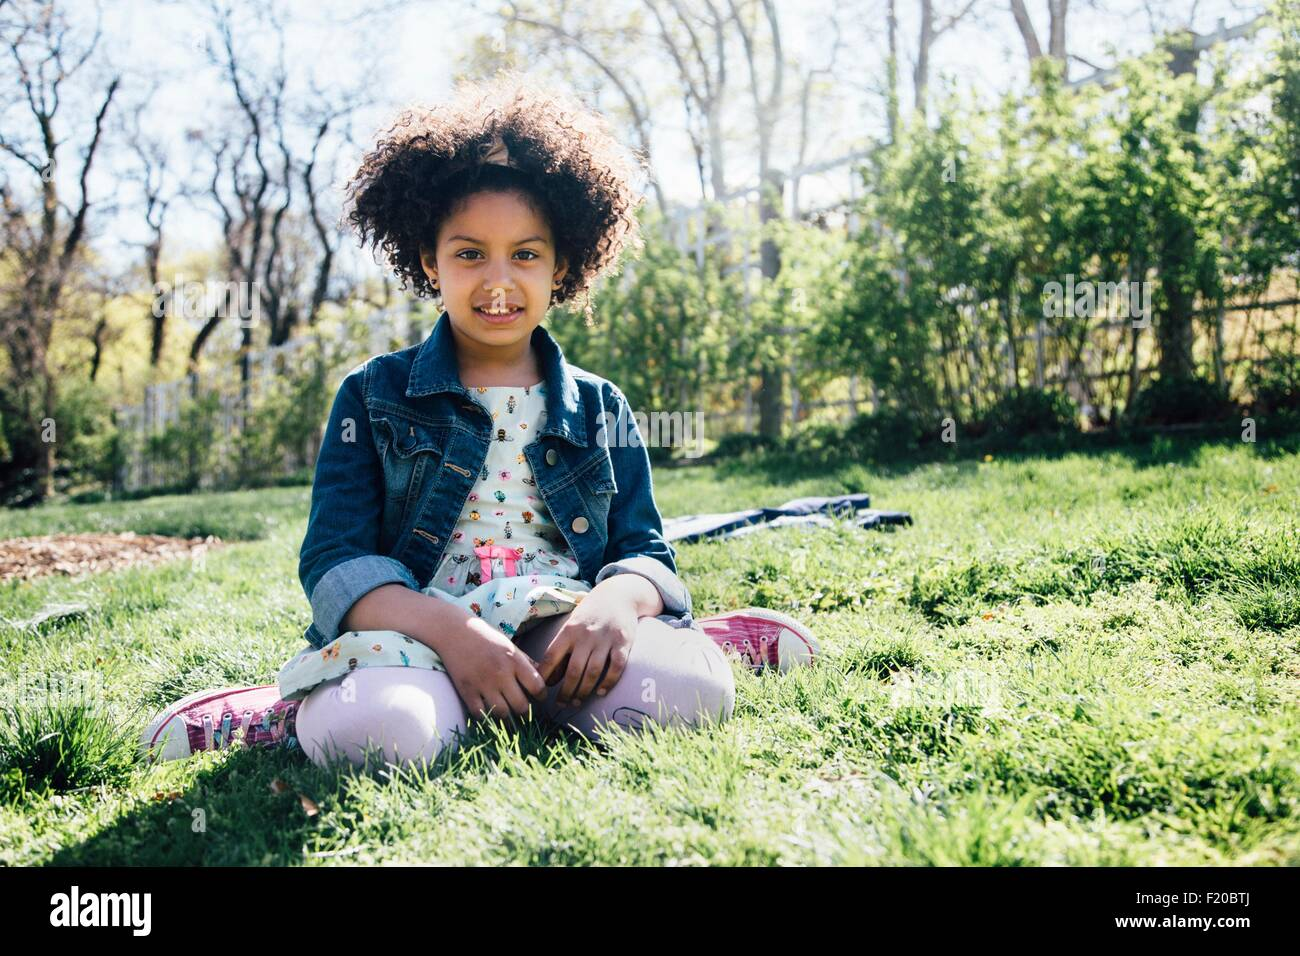 Vue avant du girl sitting on grass, looking at camera Photo Stock